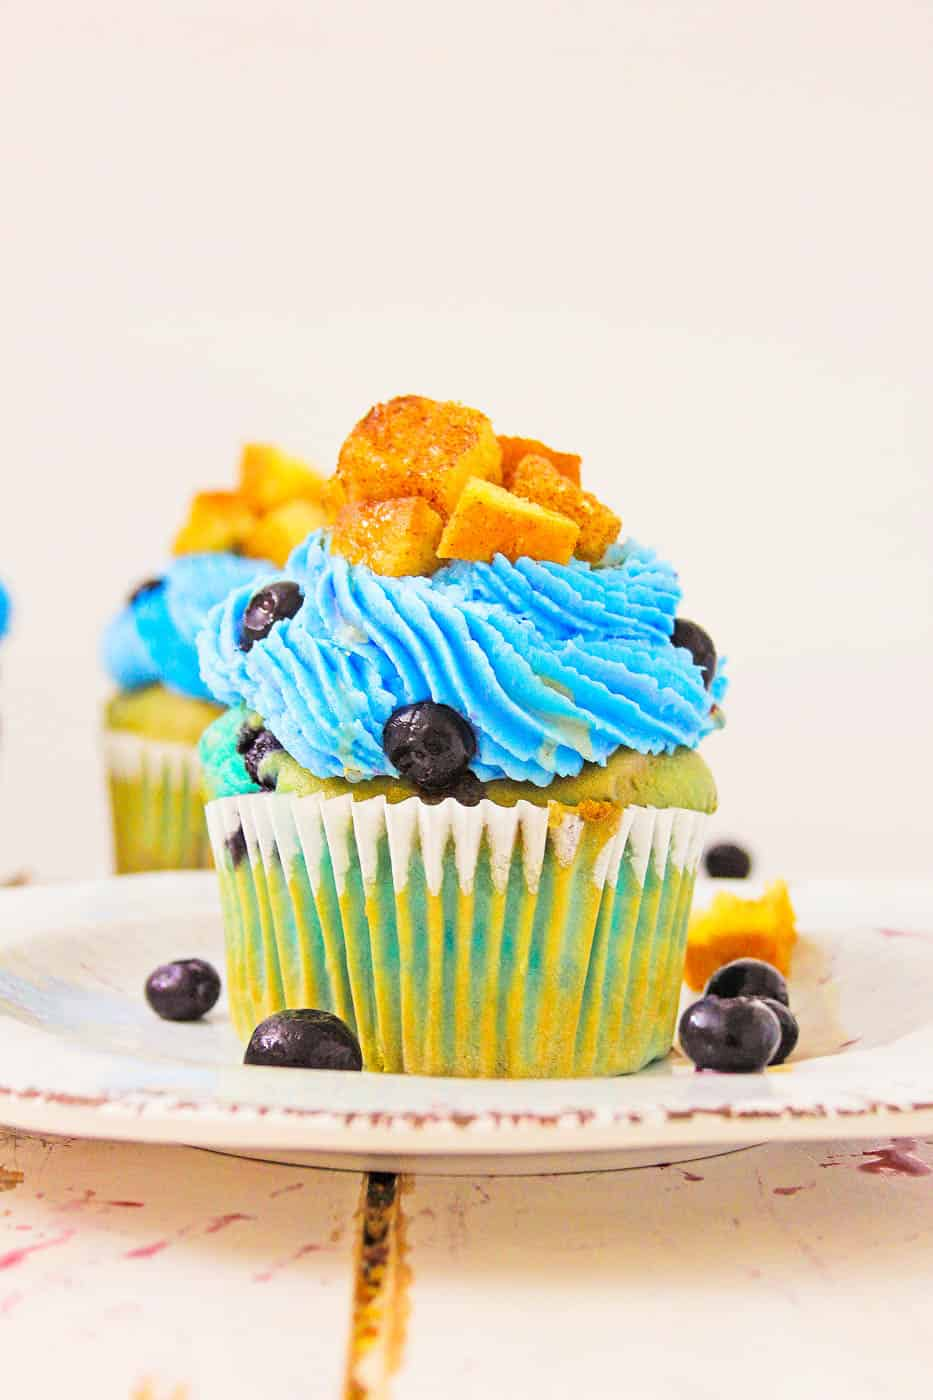 Blueberry Lemonade Cupcakes With Lemon Cream Cheese Frosting with french toast cubes on top